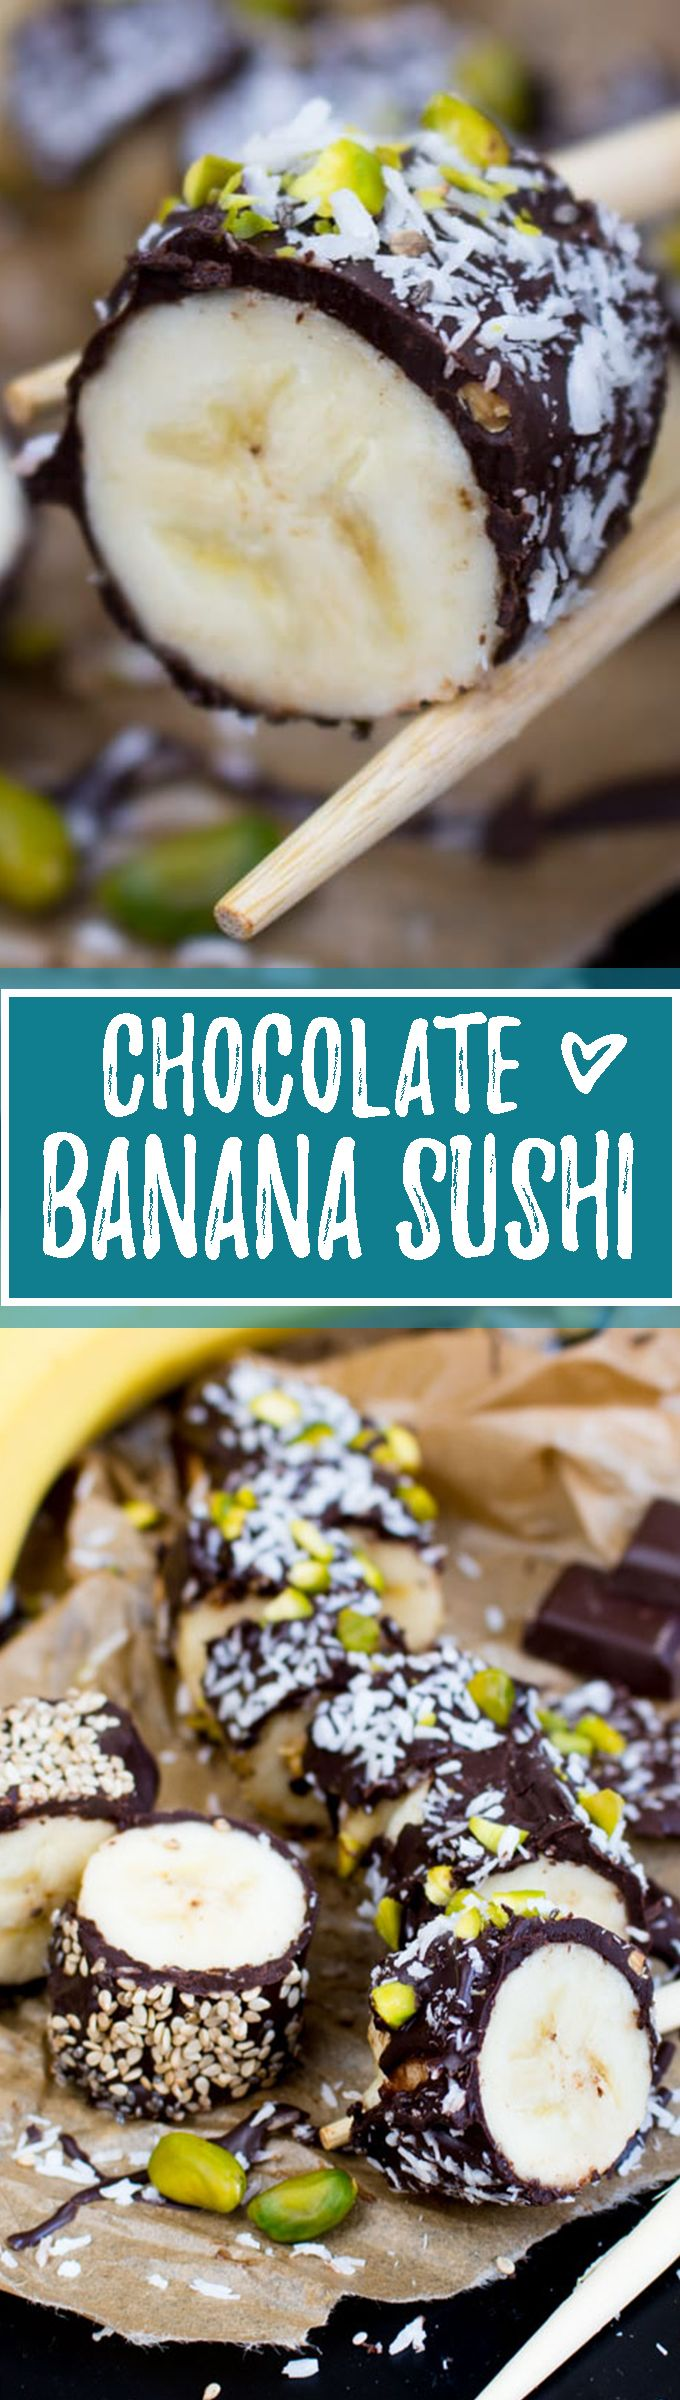 This banana sushi is covered in chocolate and topped with pistachios, coconut flakes, chia and sesame seeds. The recipe is super easy. No rolling required! The perfect vegan snack. <3 | veganheaven.org